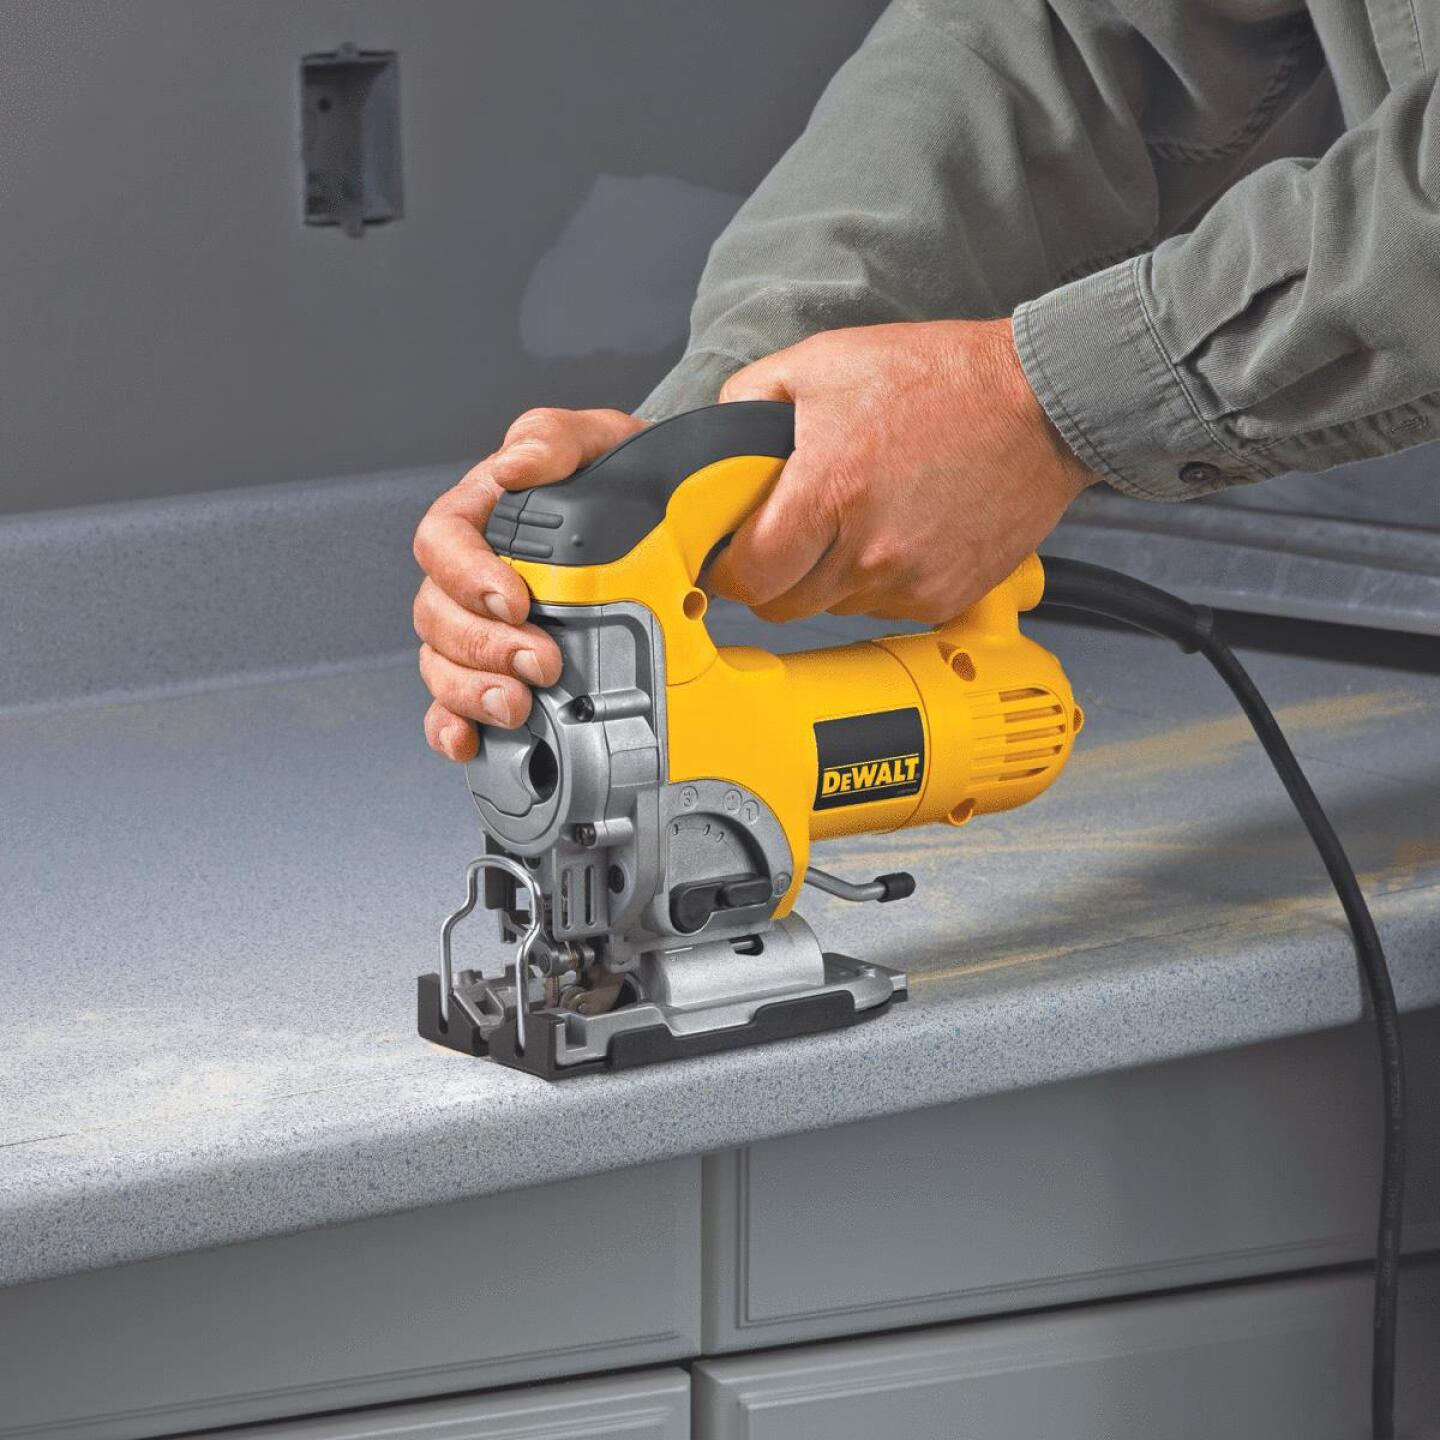 DeWalt 6.5A 4-Position 500 to 3100 SPM Jig Saw Image 7